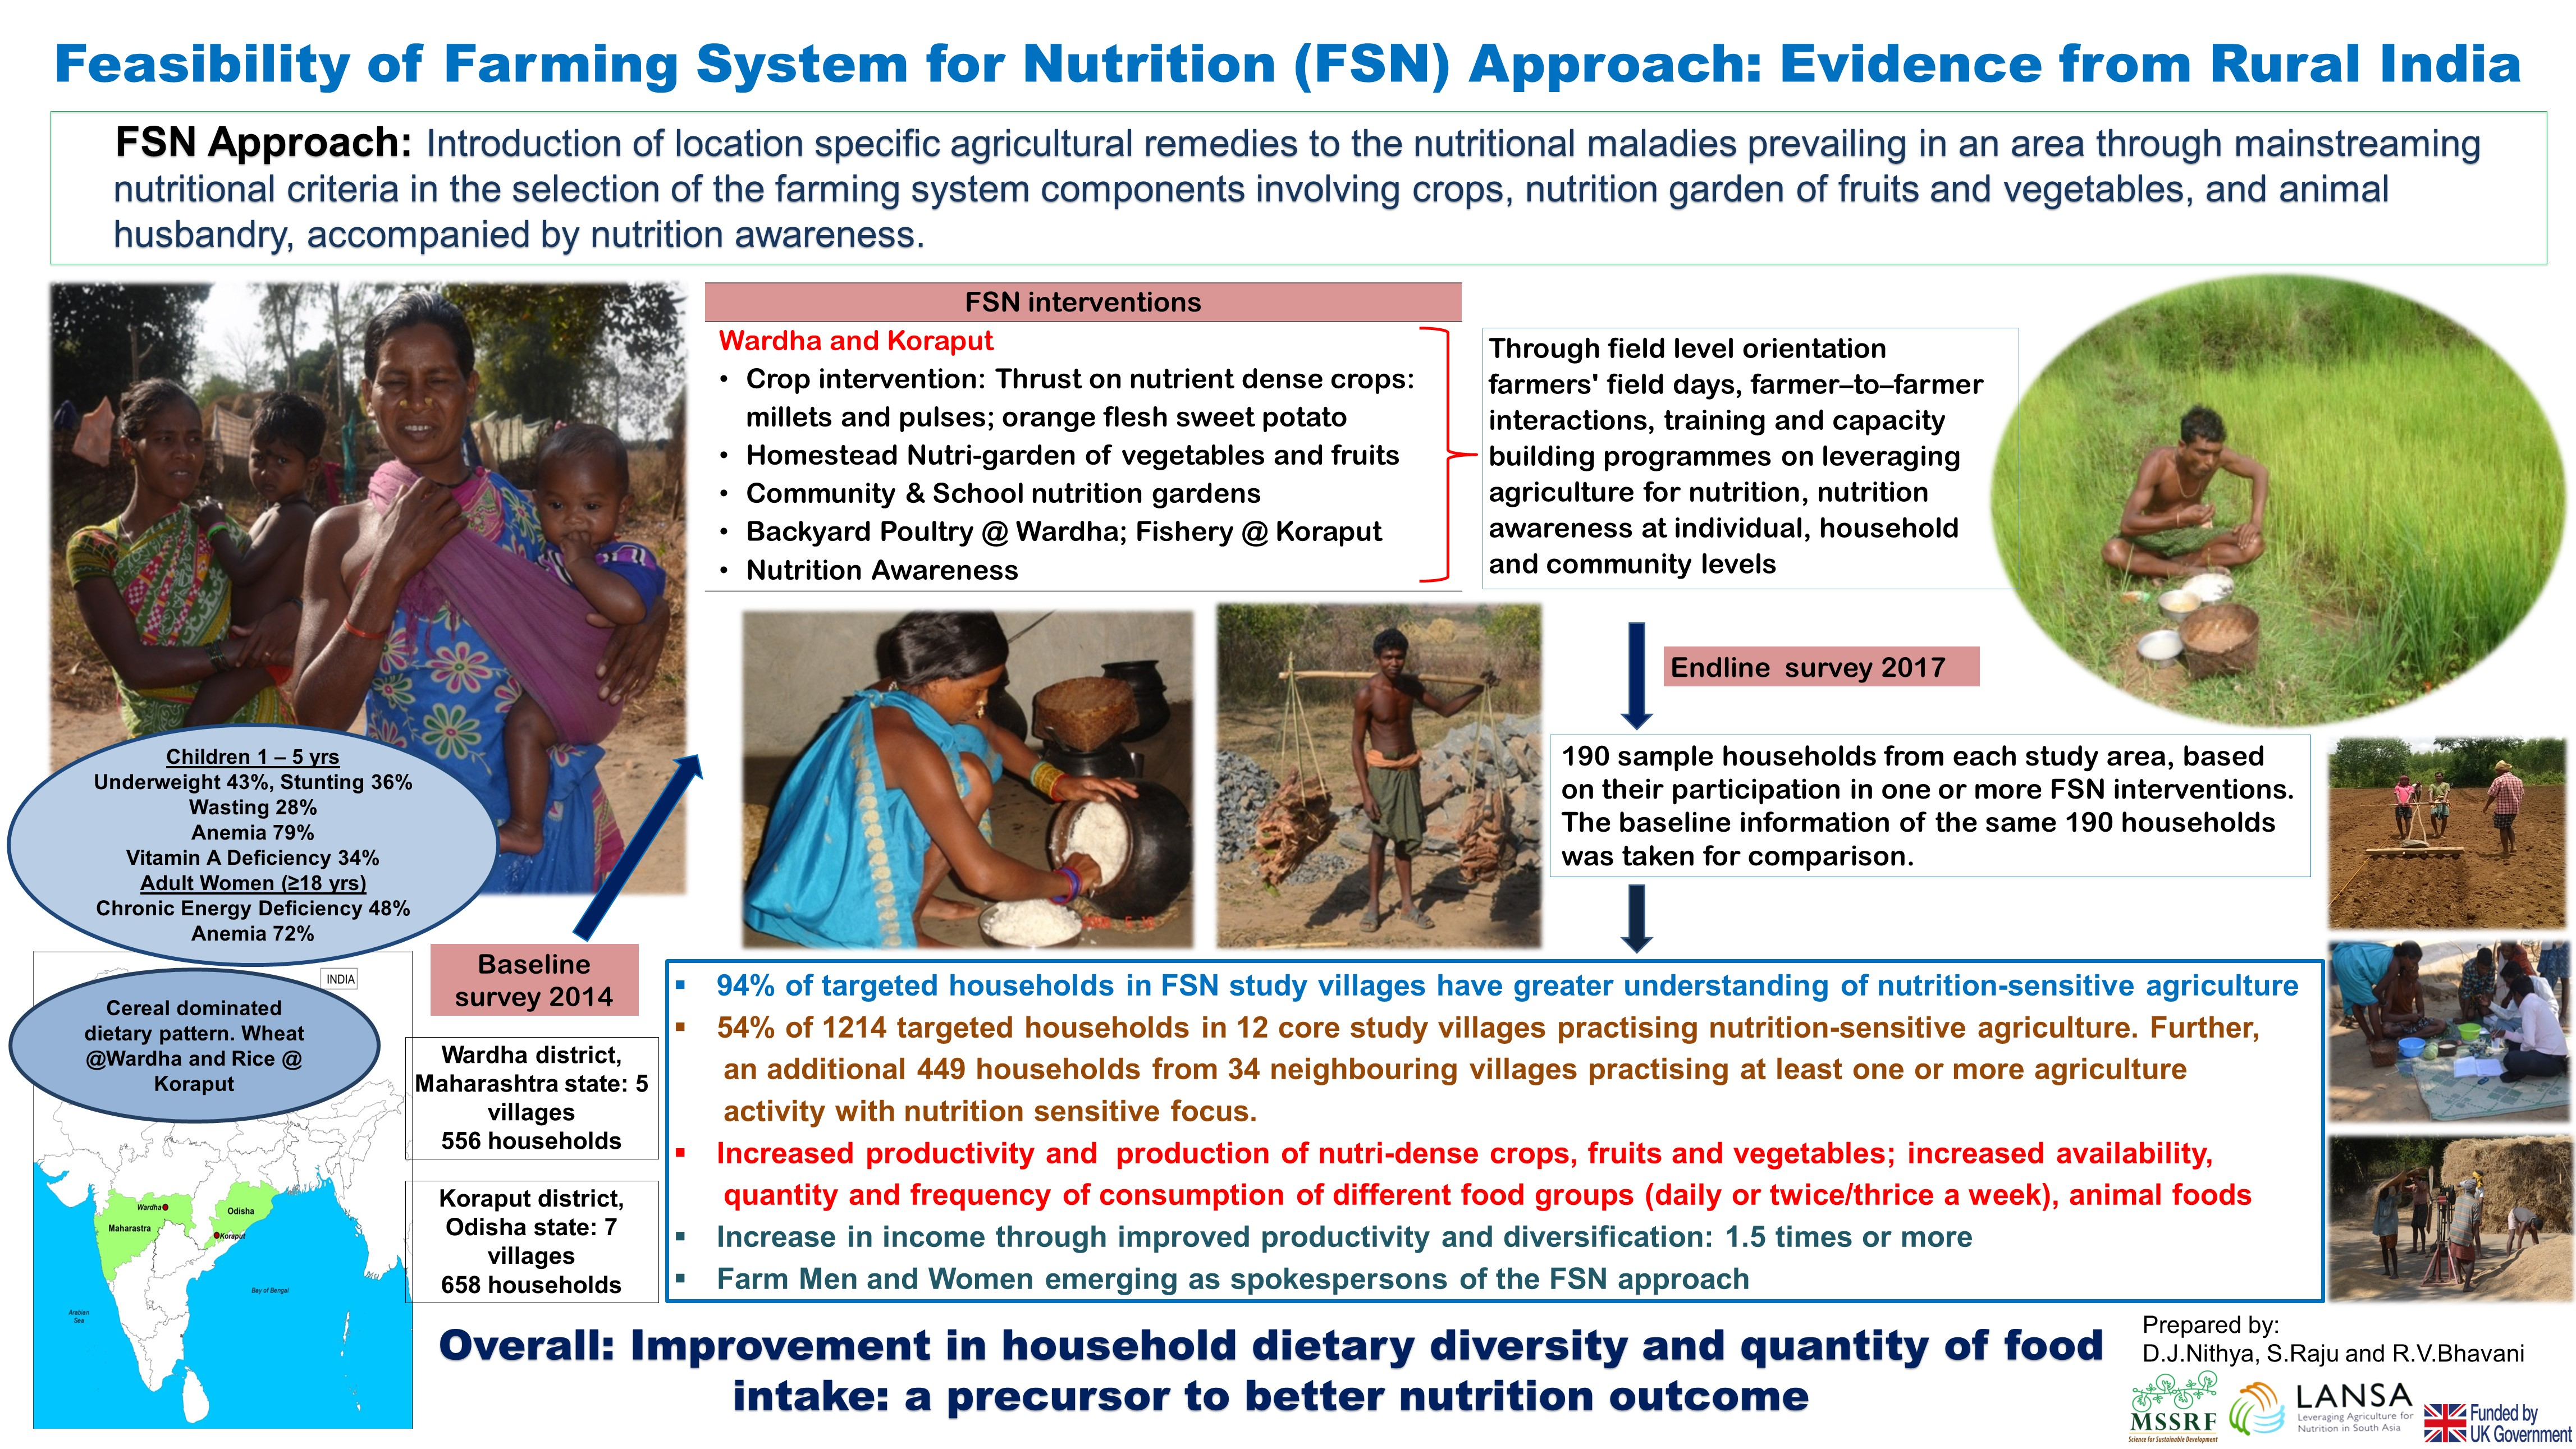 Feasibility of Farming System for Nutrition (FSN) Approach: Evidence from Rural India